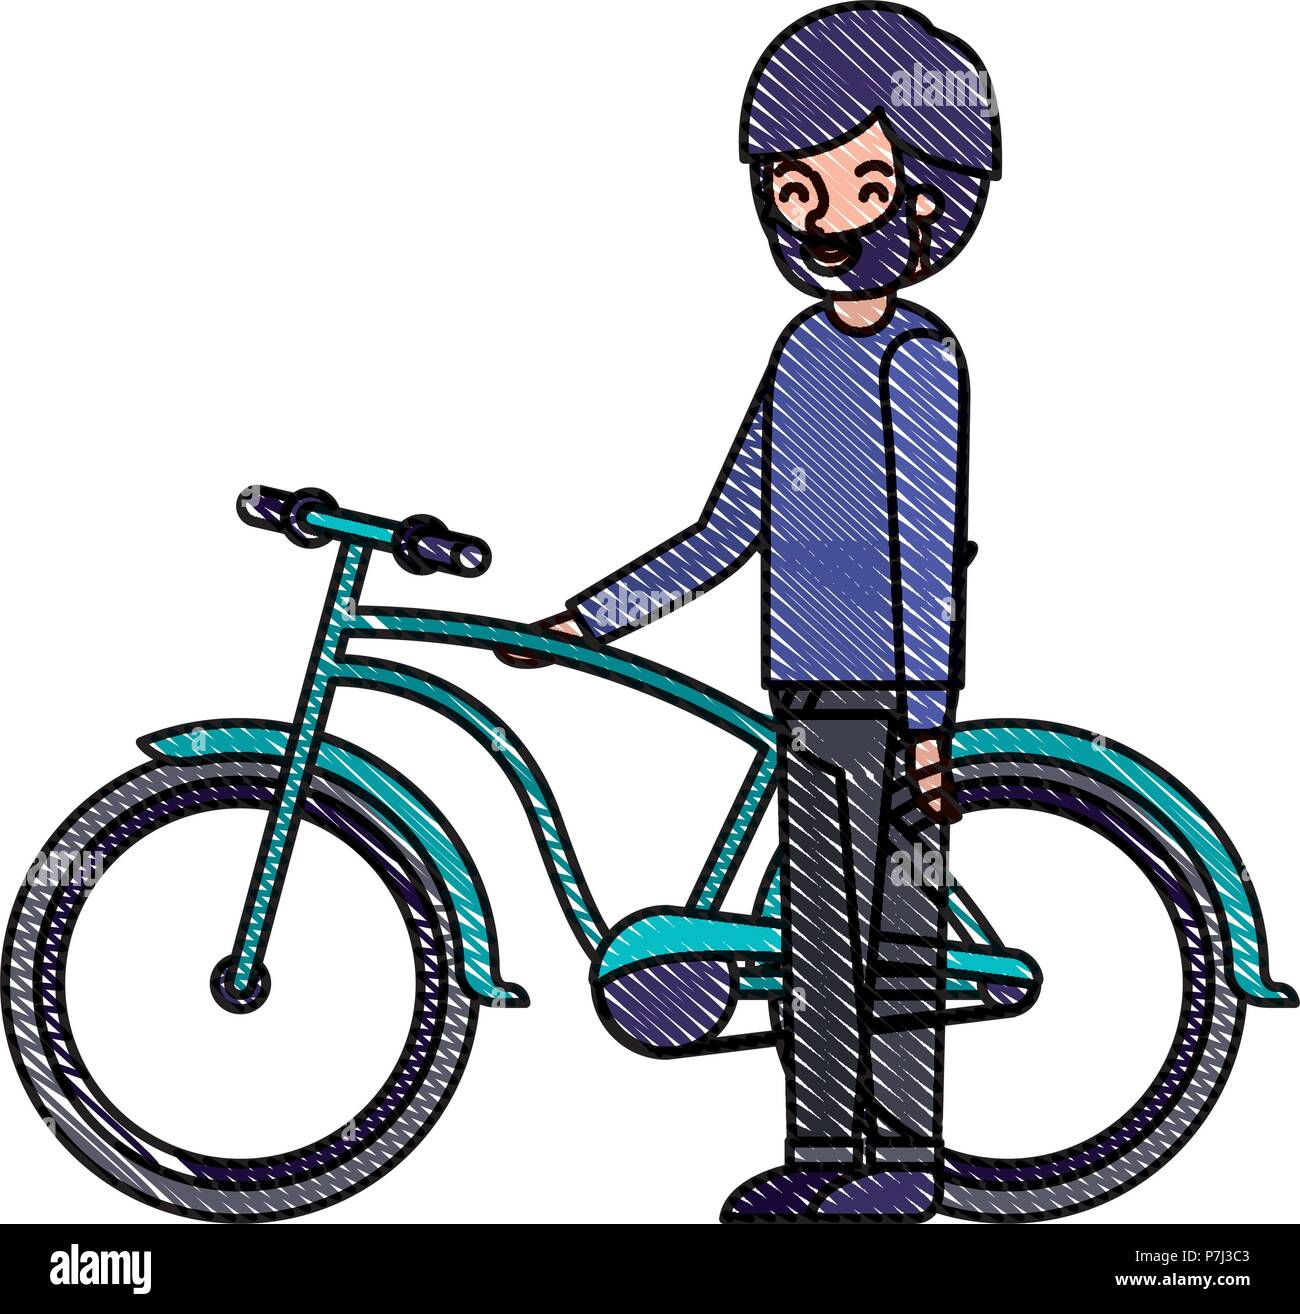 young man with bicycle avatar character - Stock Image